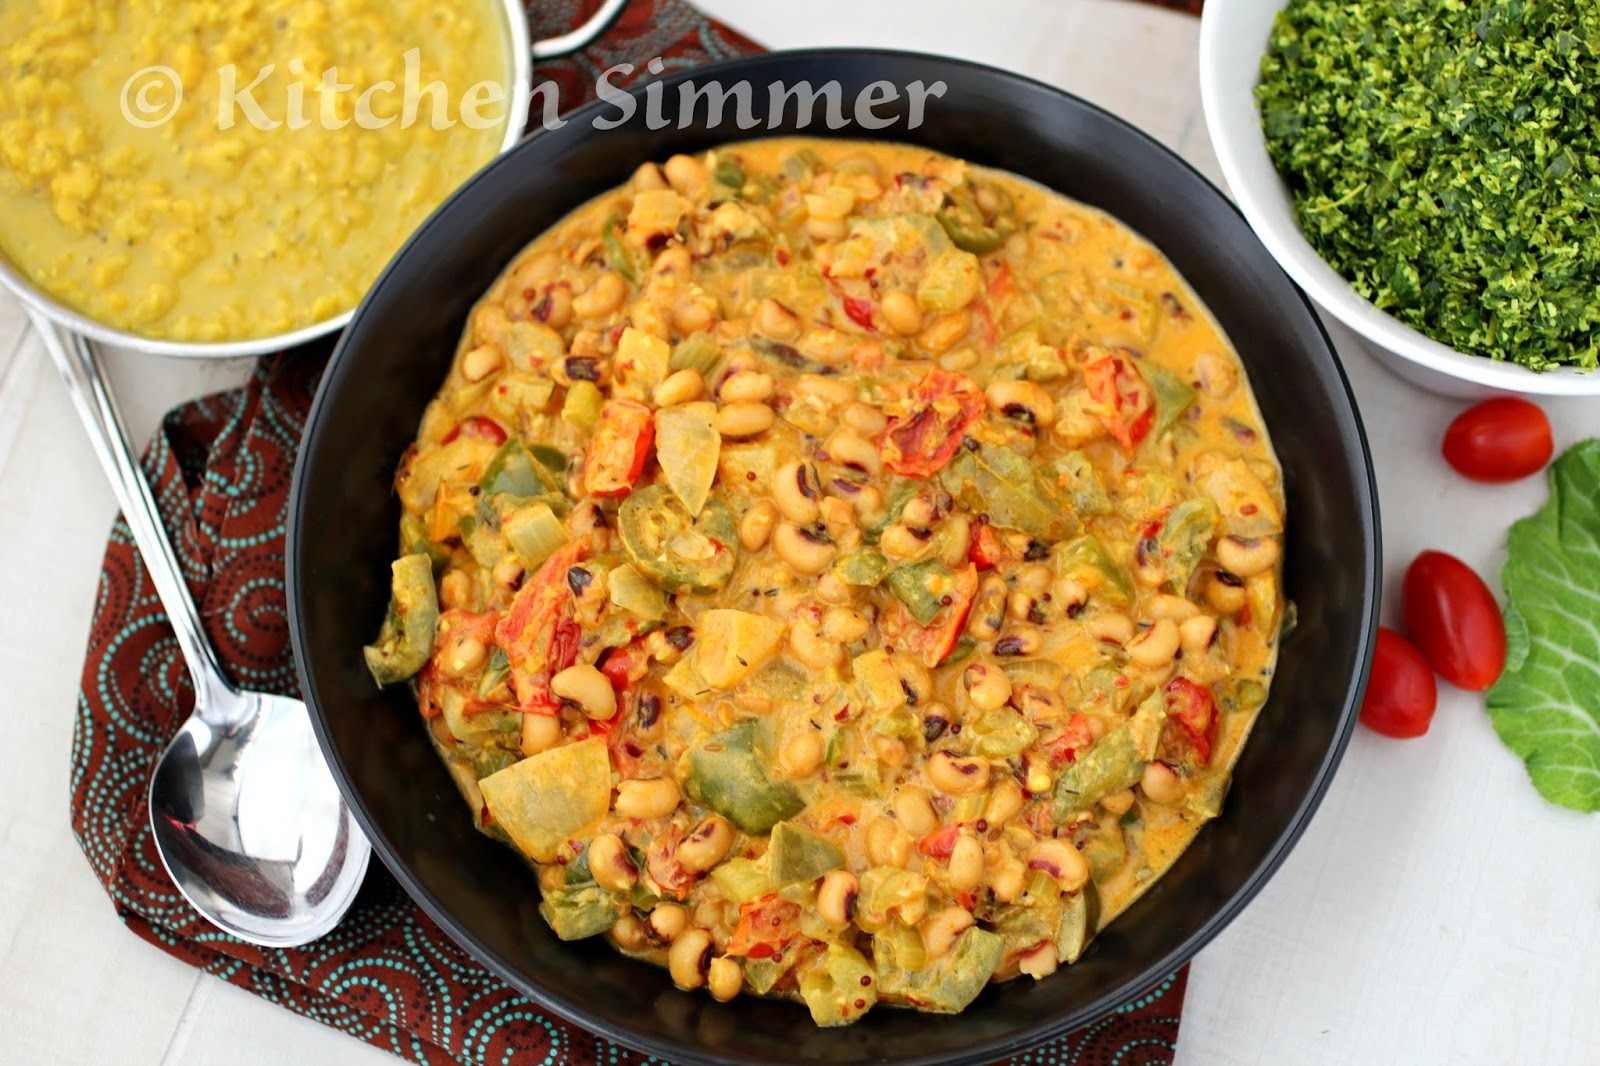 Kitchen simmer curried hoppin john vegan black eyed pea curry copyright all recipes content and images unless otherwise stated are the sole property of kitchen simmer formerly known as curry and comfort forumfinder Choice Image